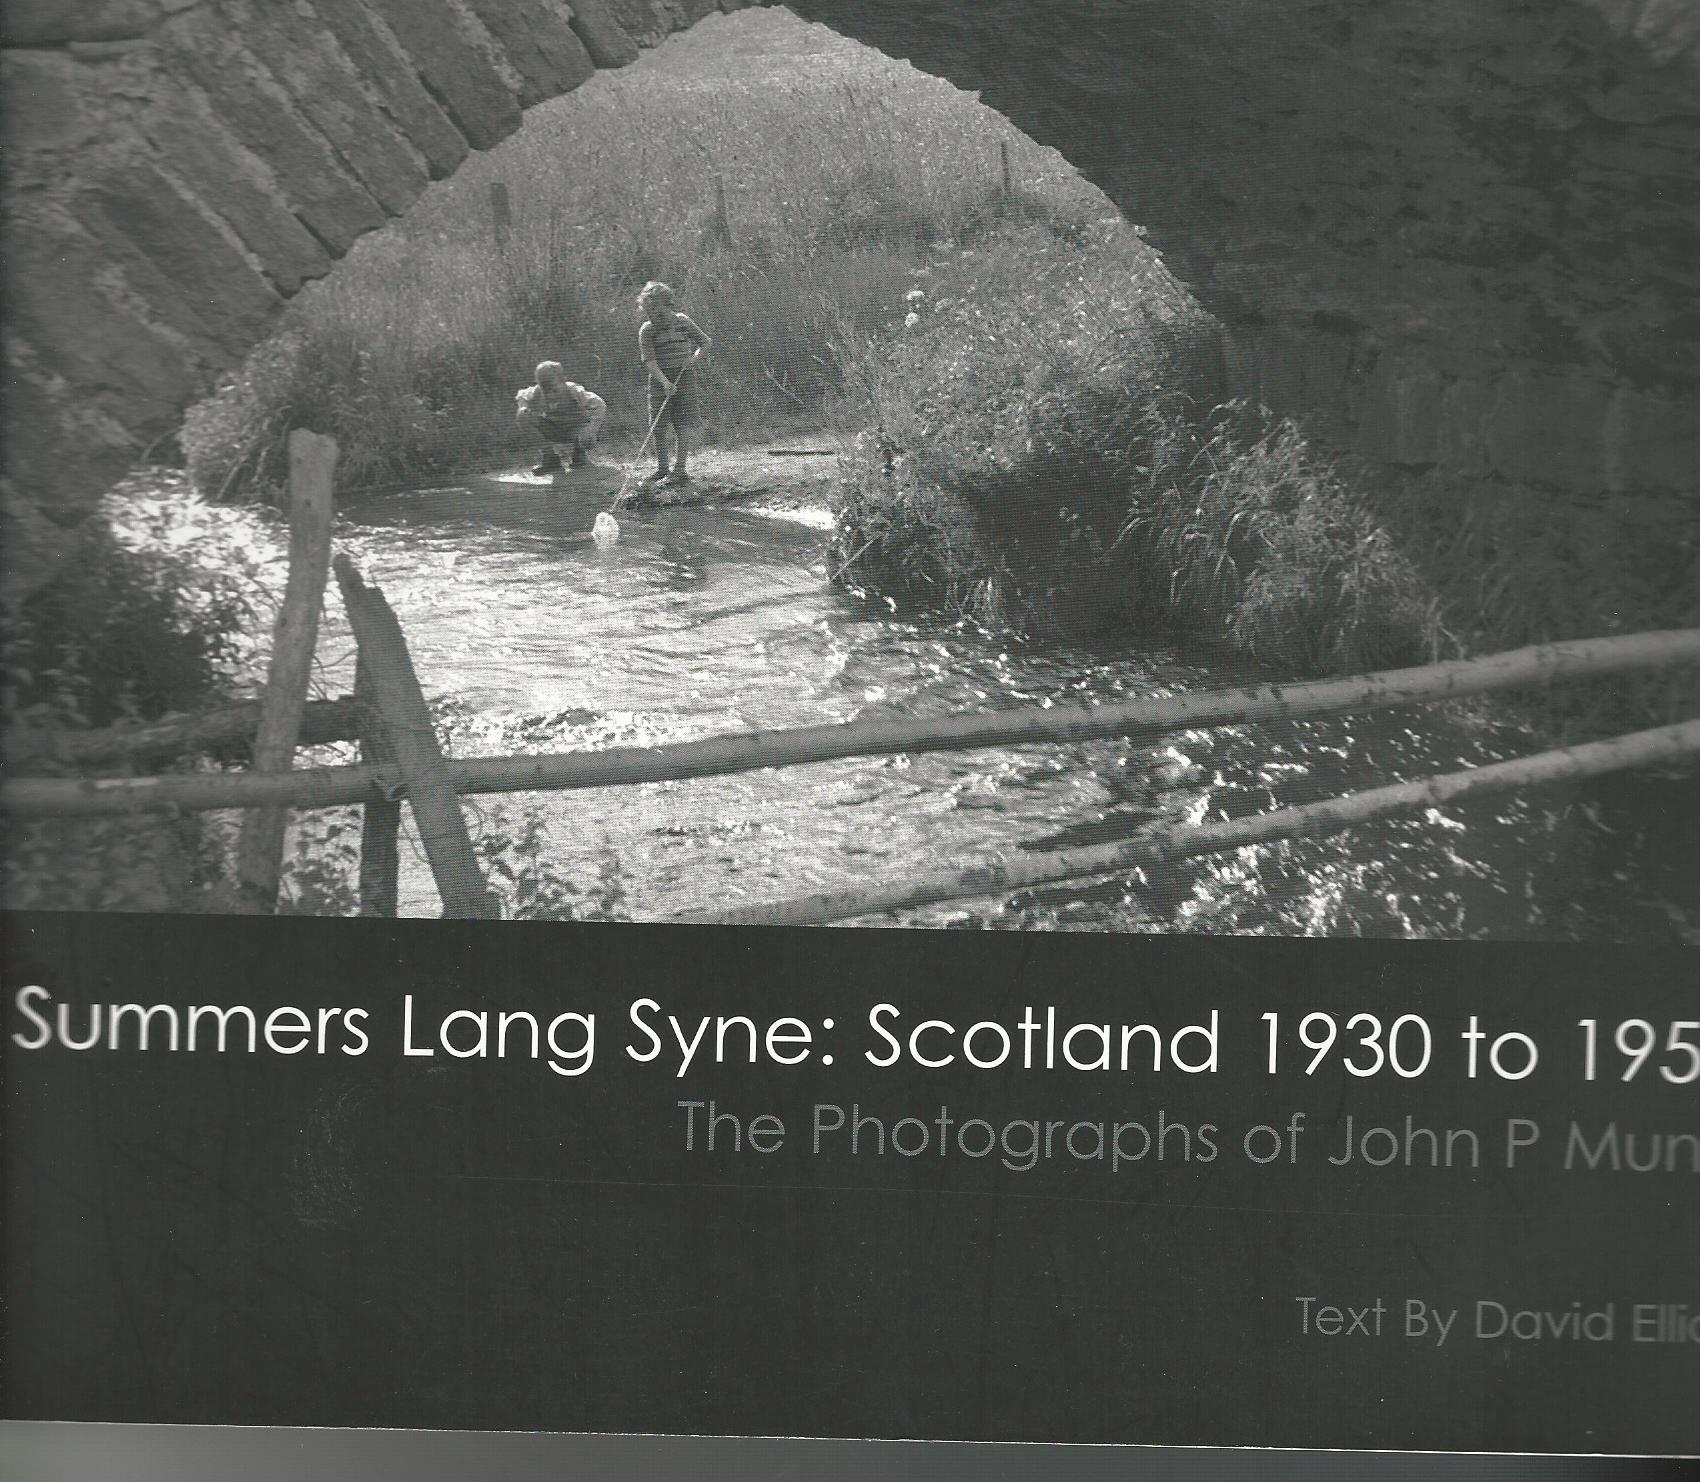 Image for Summers Lang Syne: Scotland 1930 to 1959 - The Photographs of John P Munn